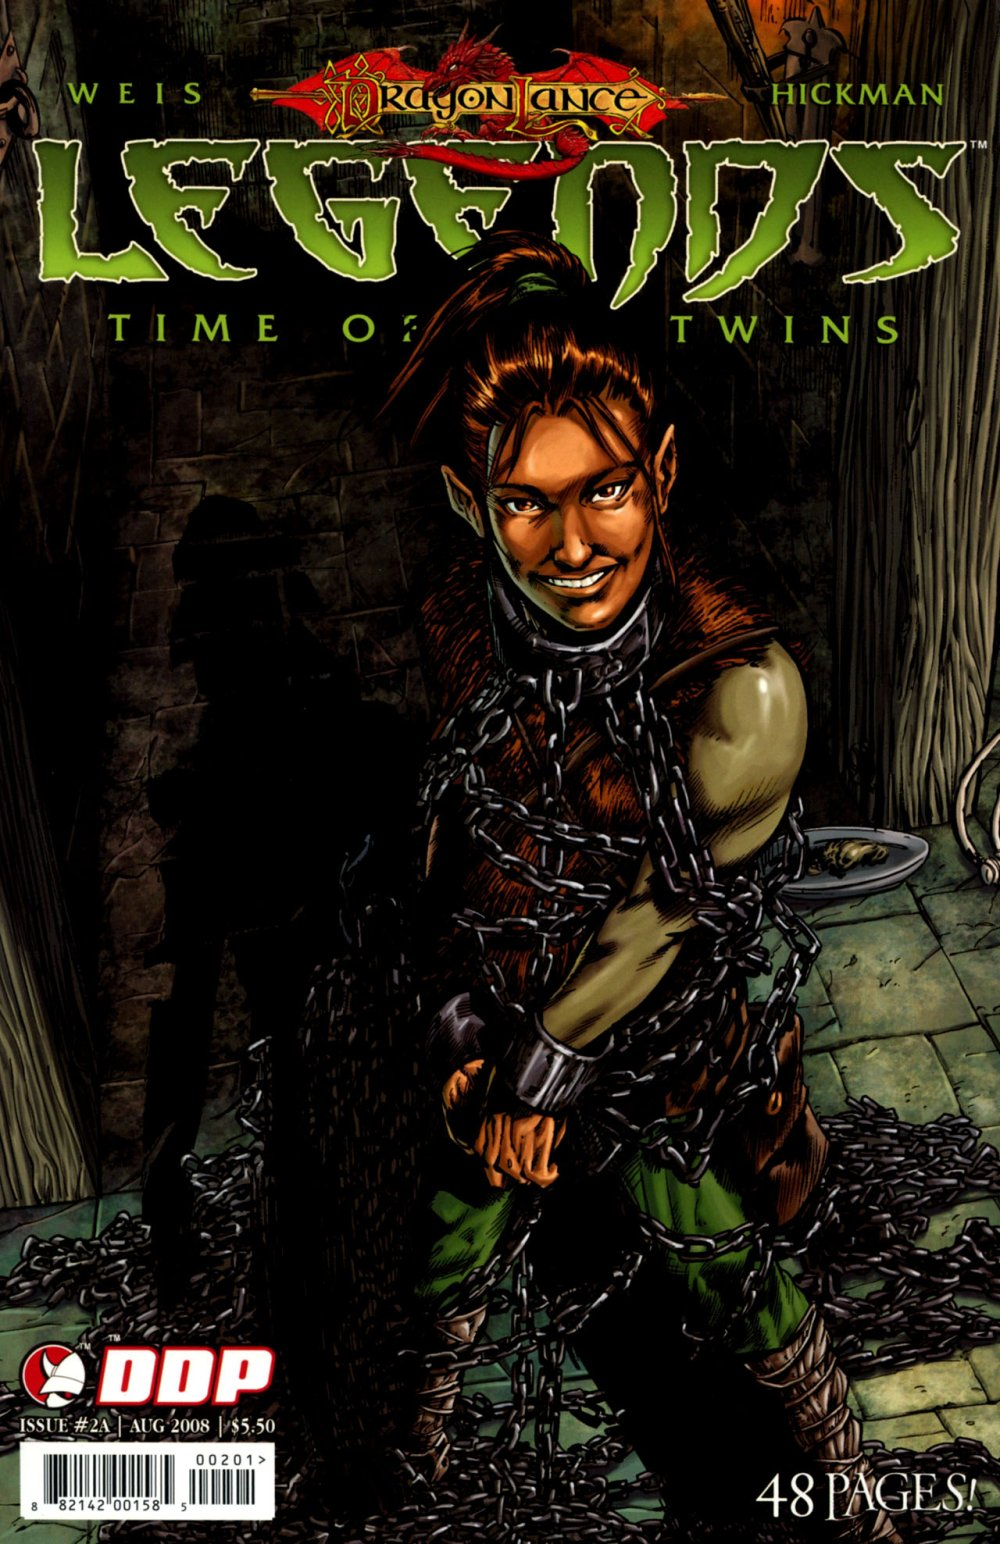 Dragonlance- Legend Time Of The Twins [DDP] Mini 1 0002.jpg